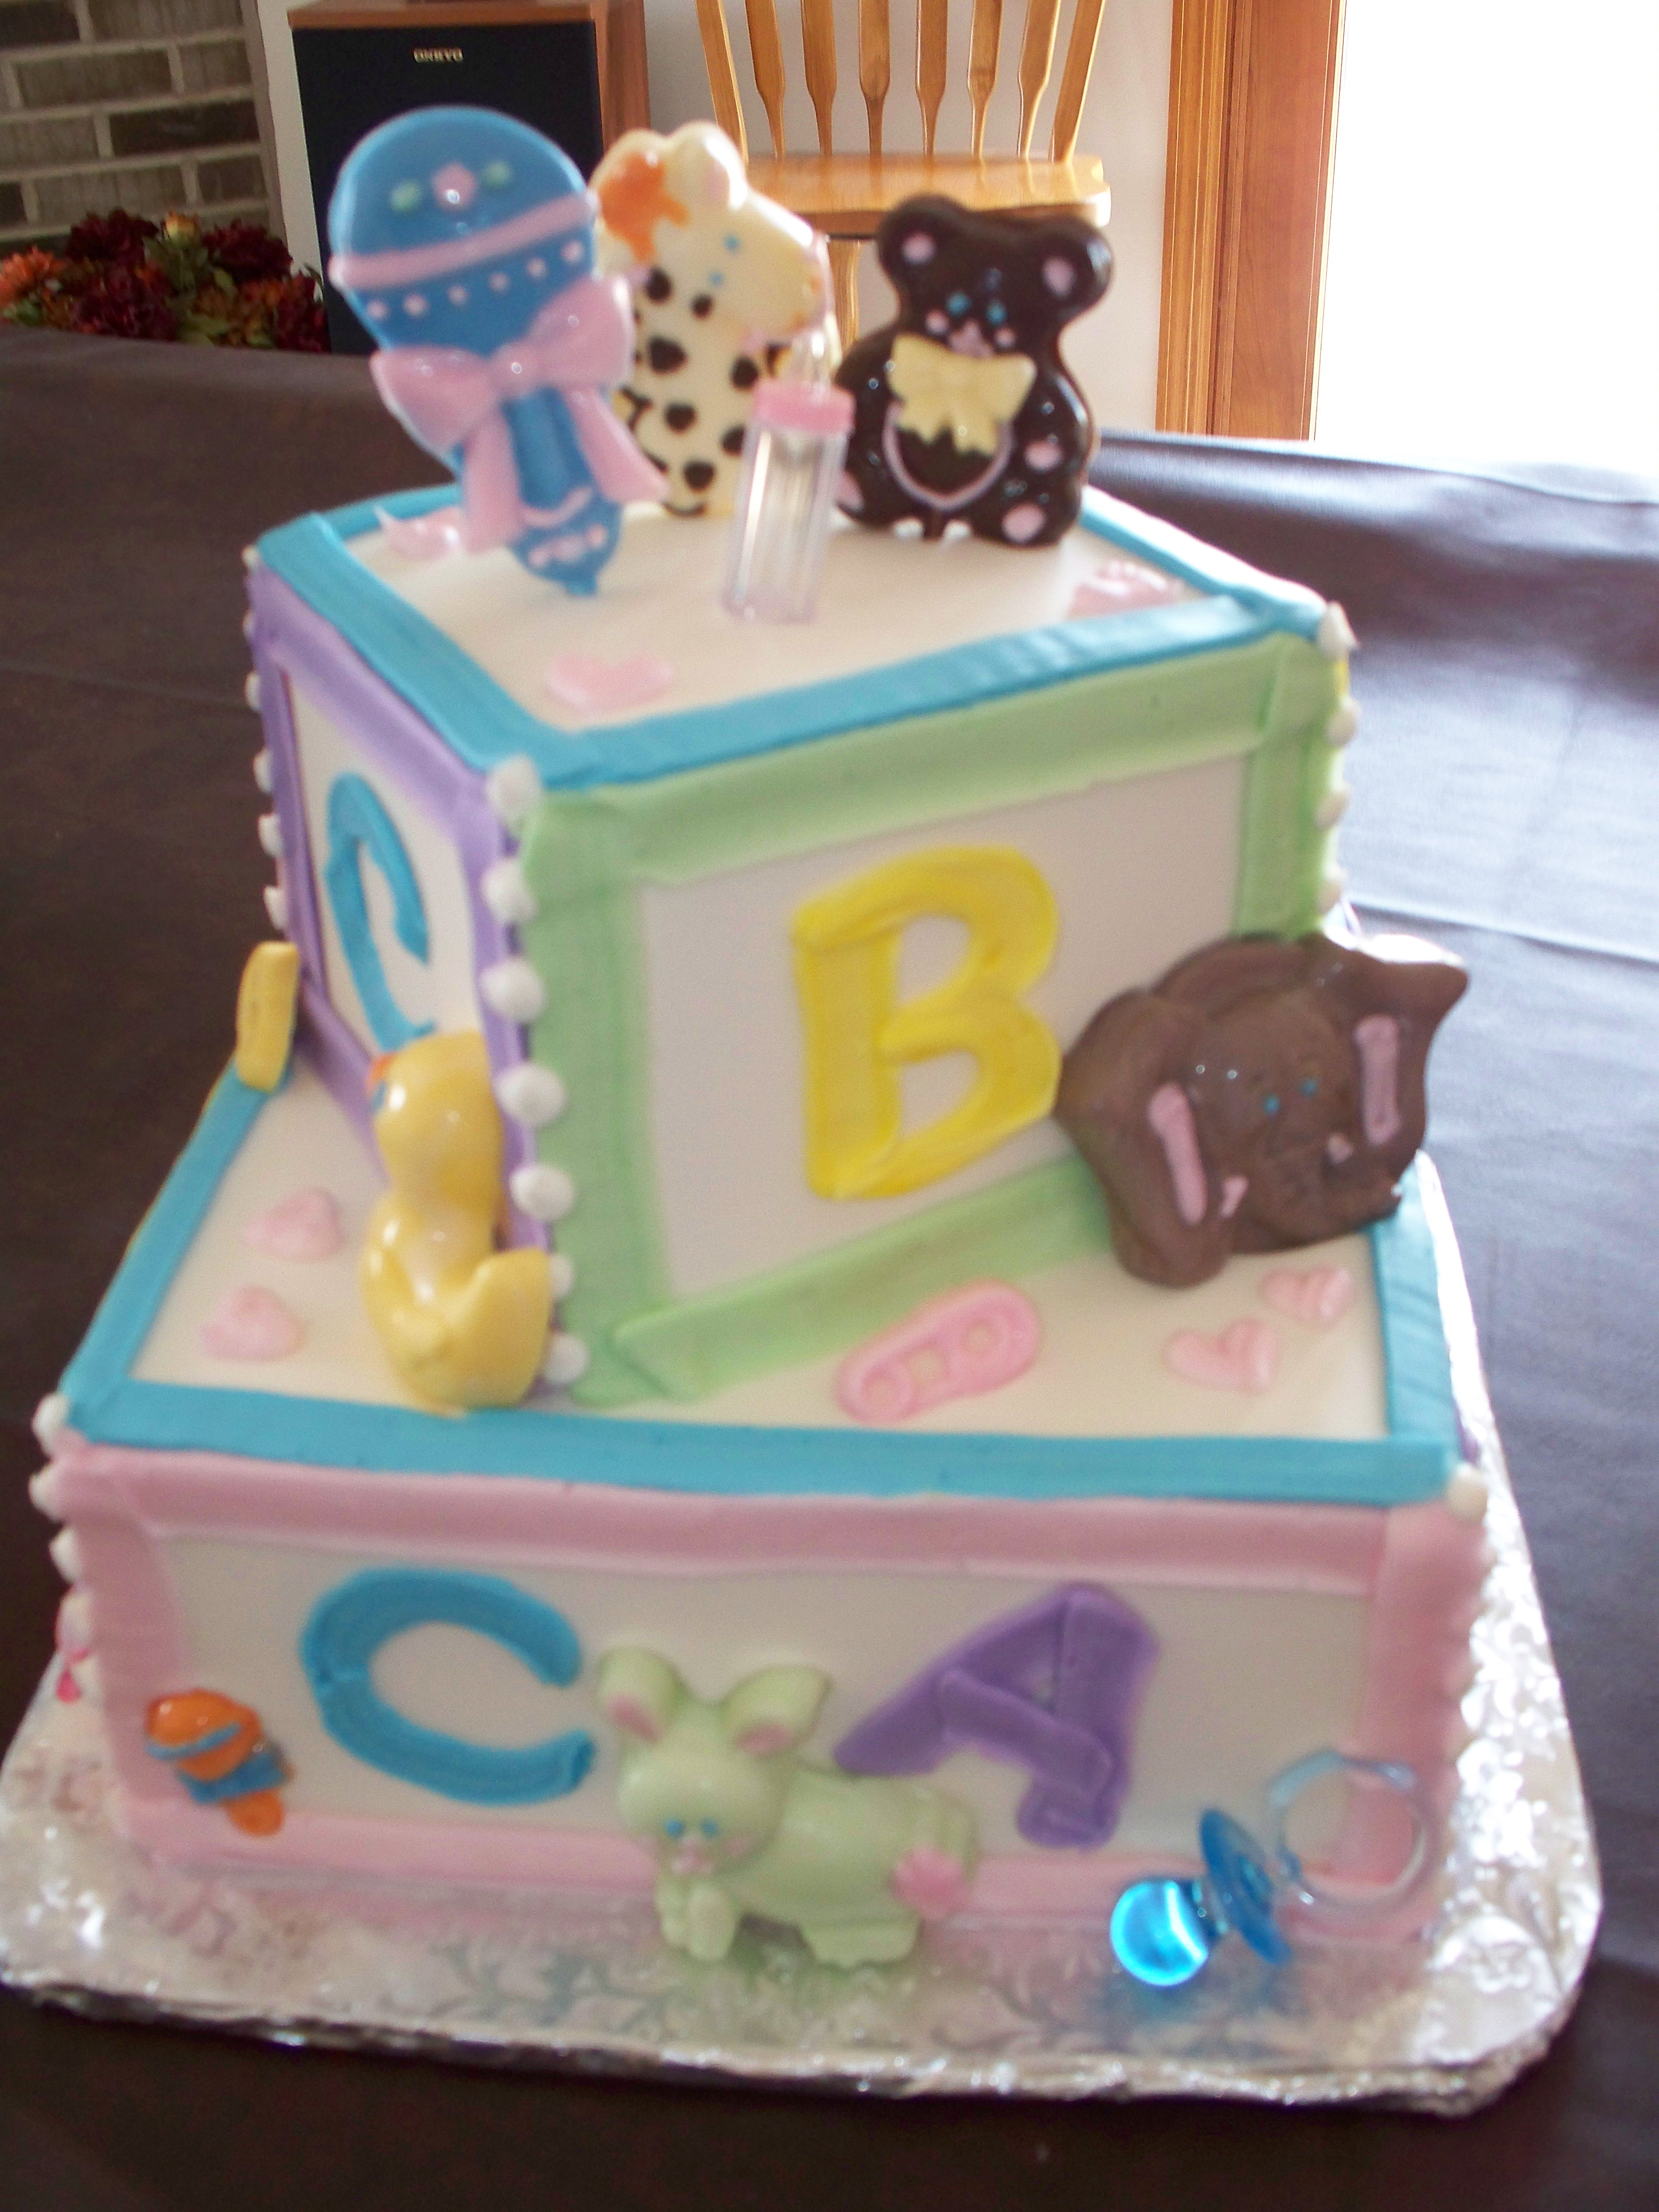 Baby Block Cake Images : Cake images, Sheet cakes and A girl on Pinterest